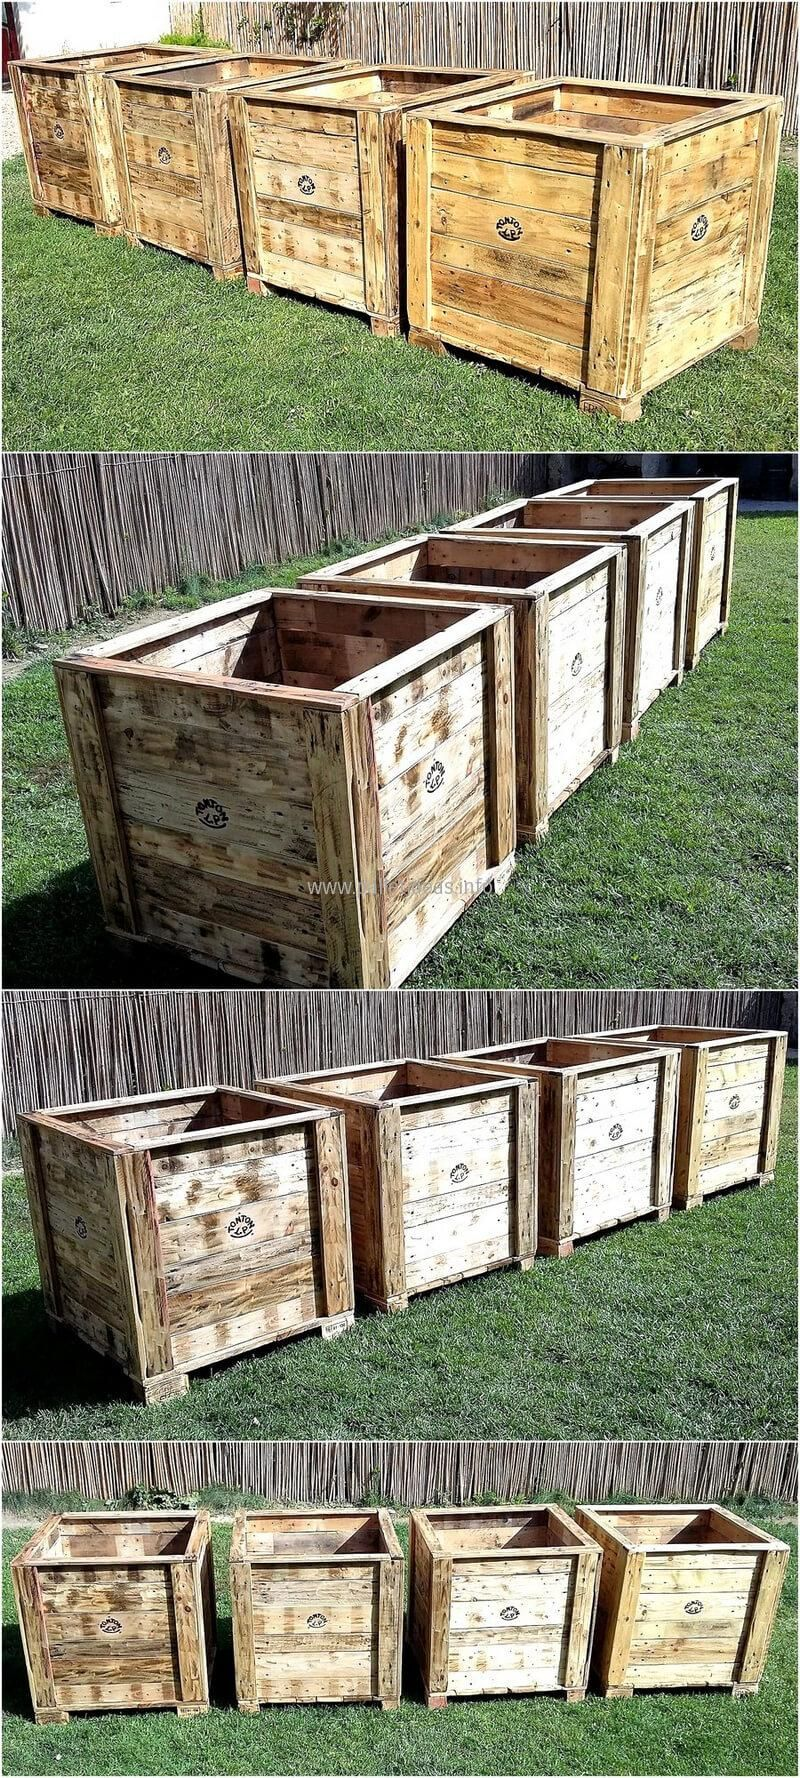 incredible wood pallet ideas and projects wood pallets on extraordinary ideas for old used dumped pallets wood id=62693